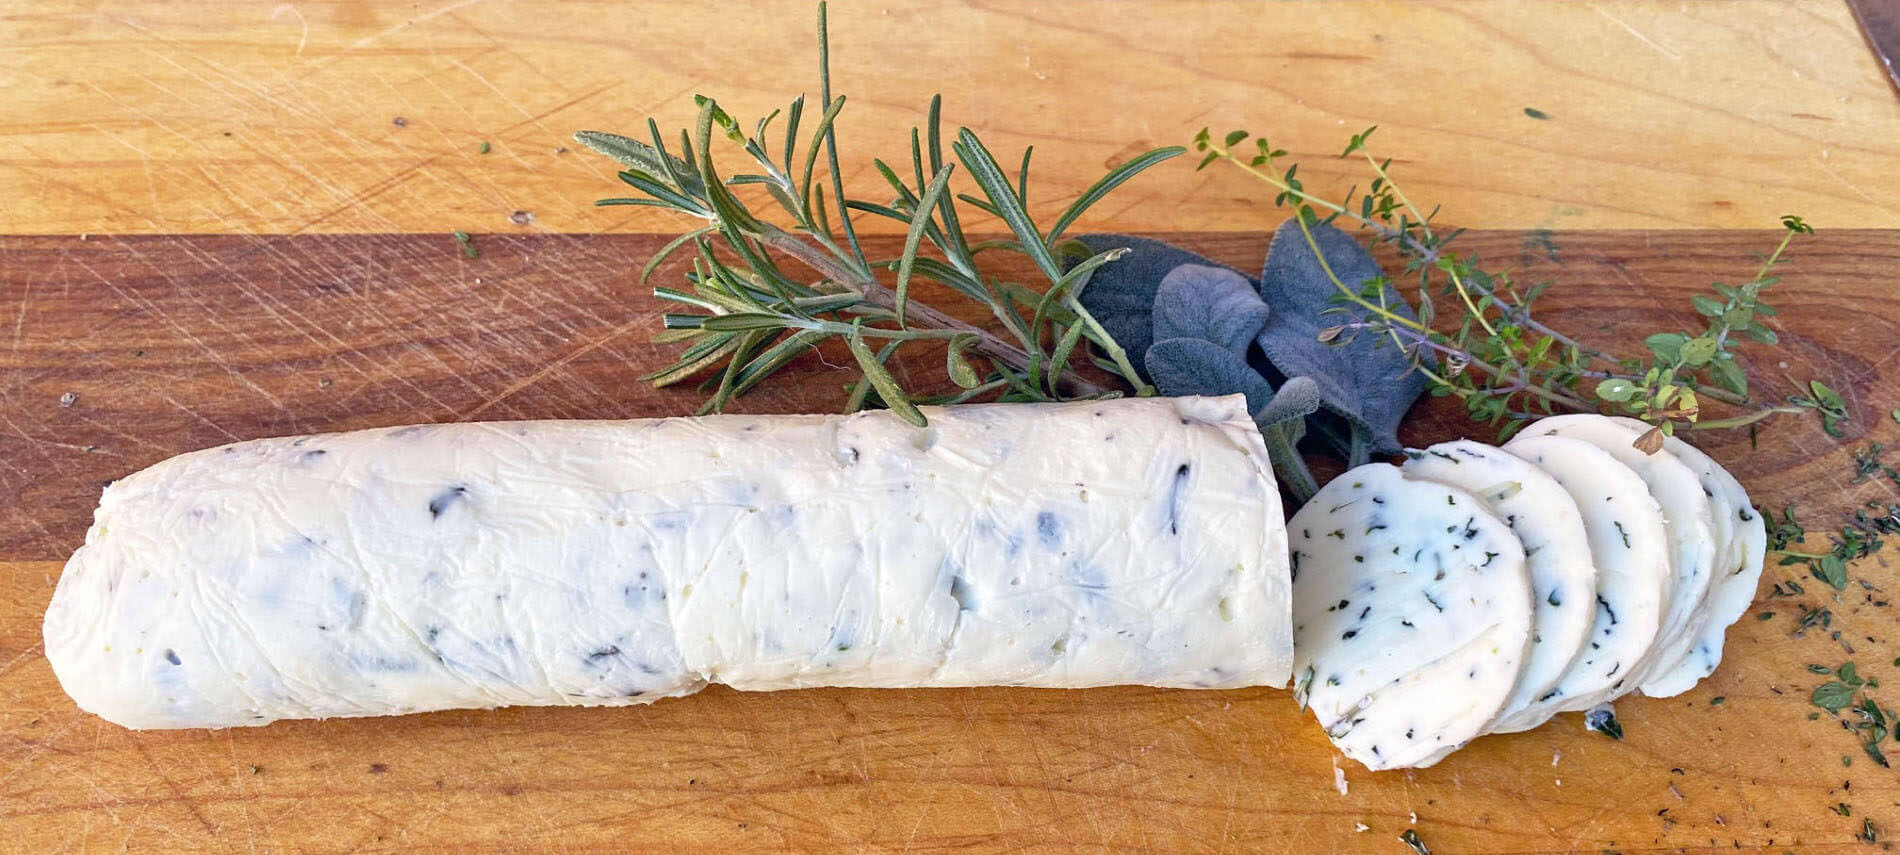 Log of white butter with flecks of herbs in the butter with fresh rosemary, sage leaves, and thyme